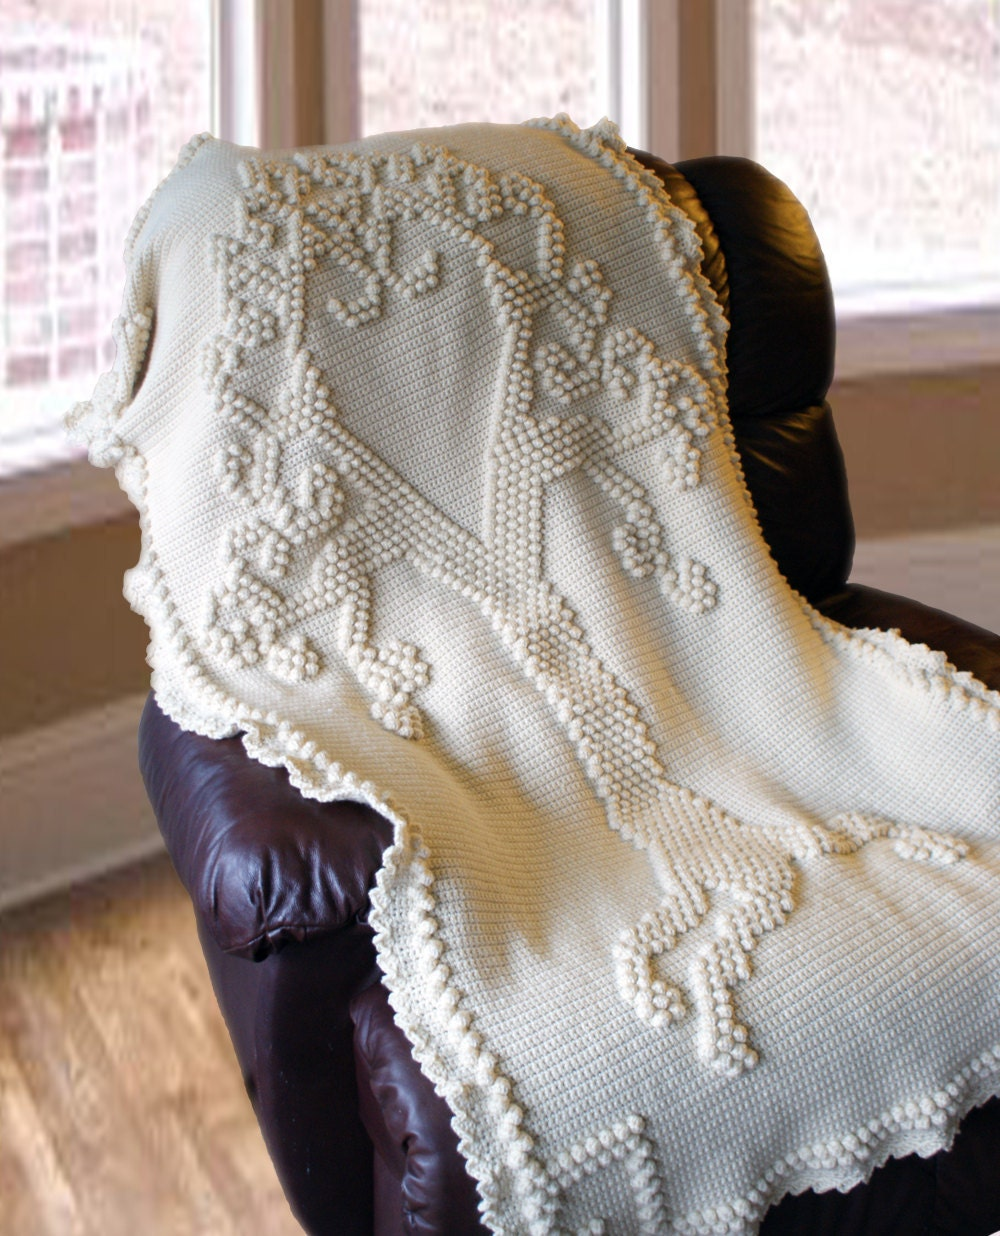 Crochet Heirloom Stitches : Crochet PatternTree of Love Heirloom Afghan Crochet by ...